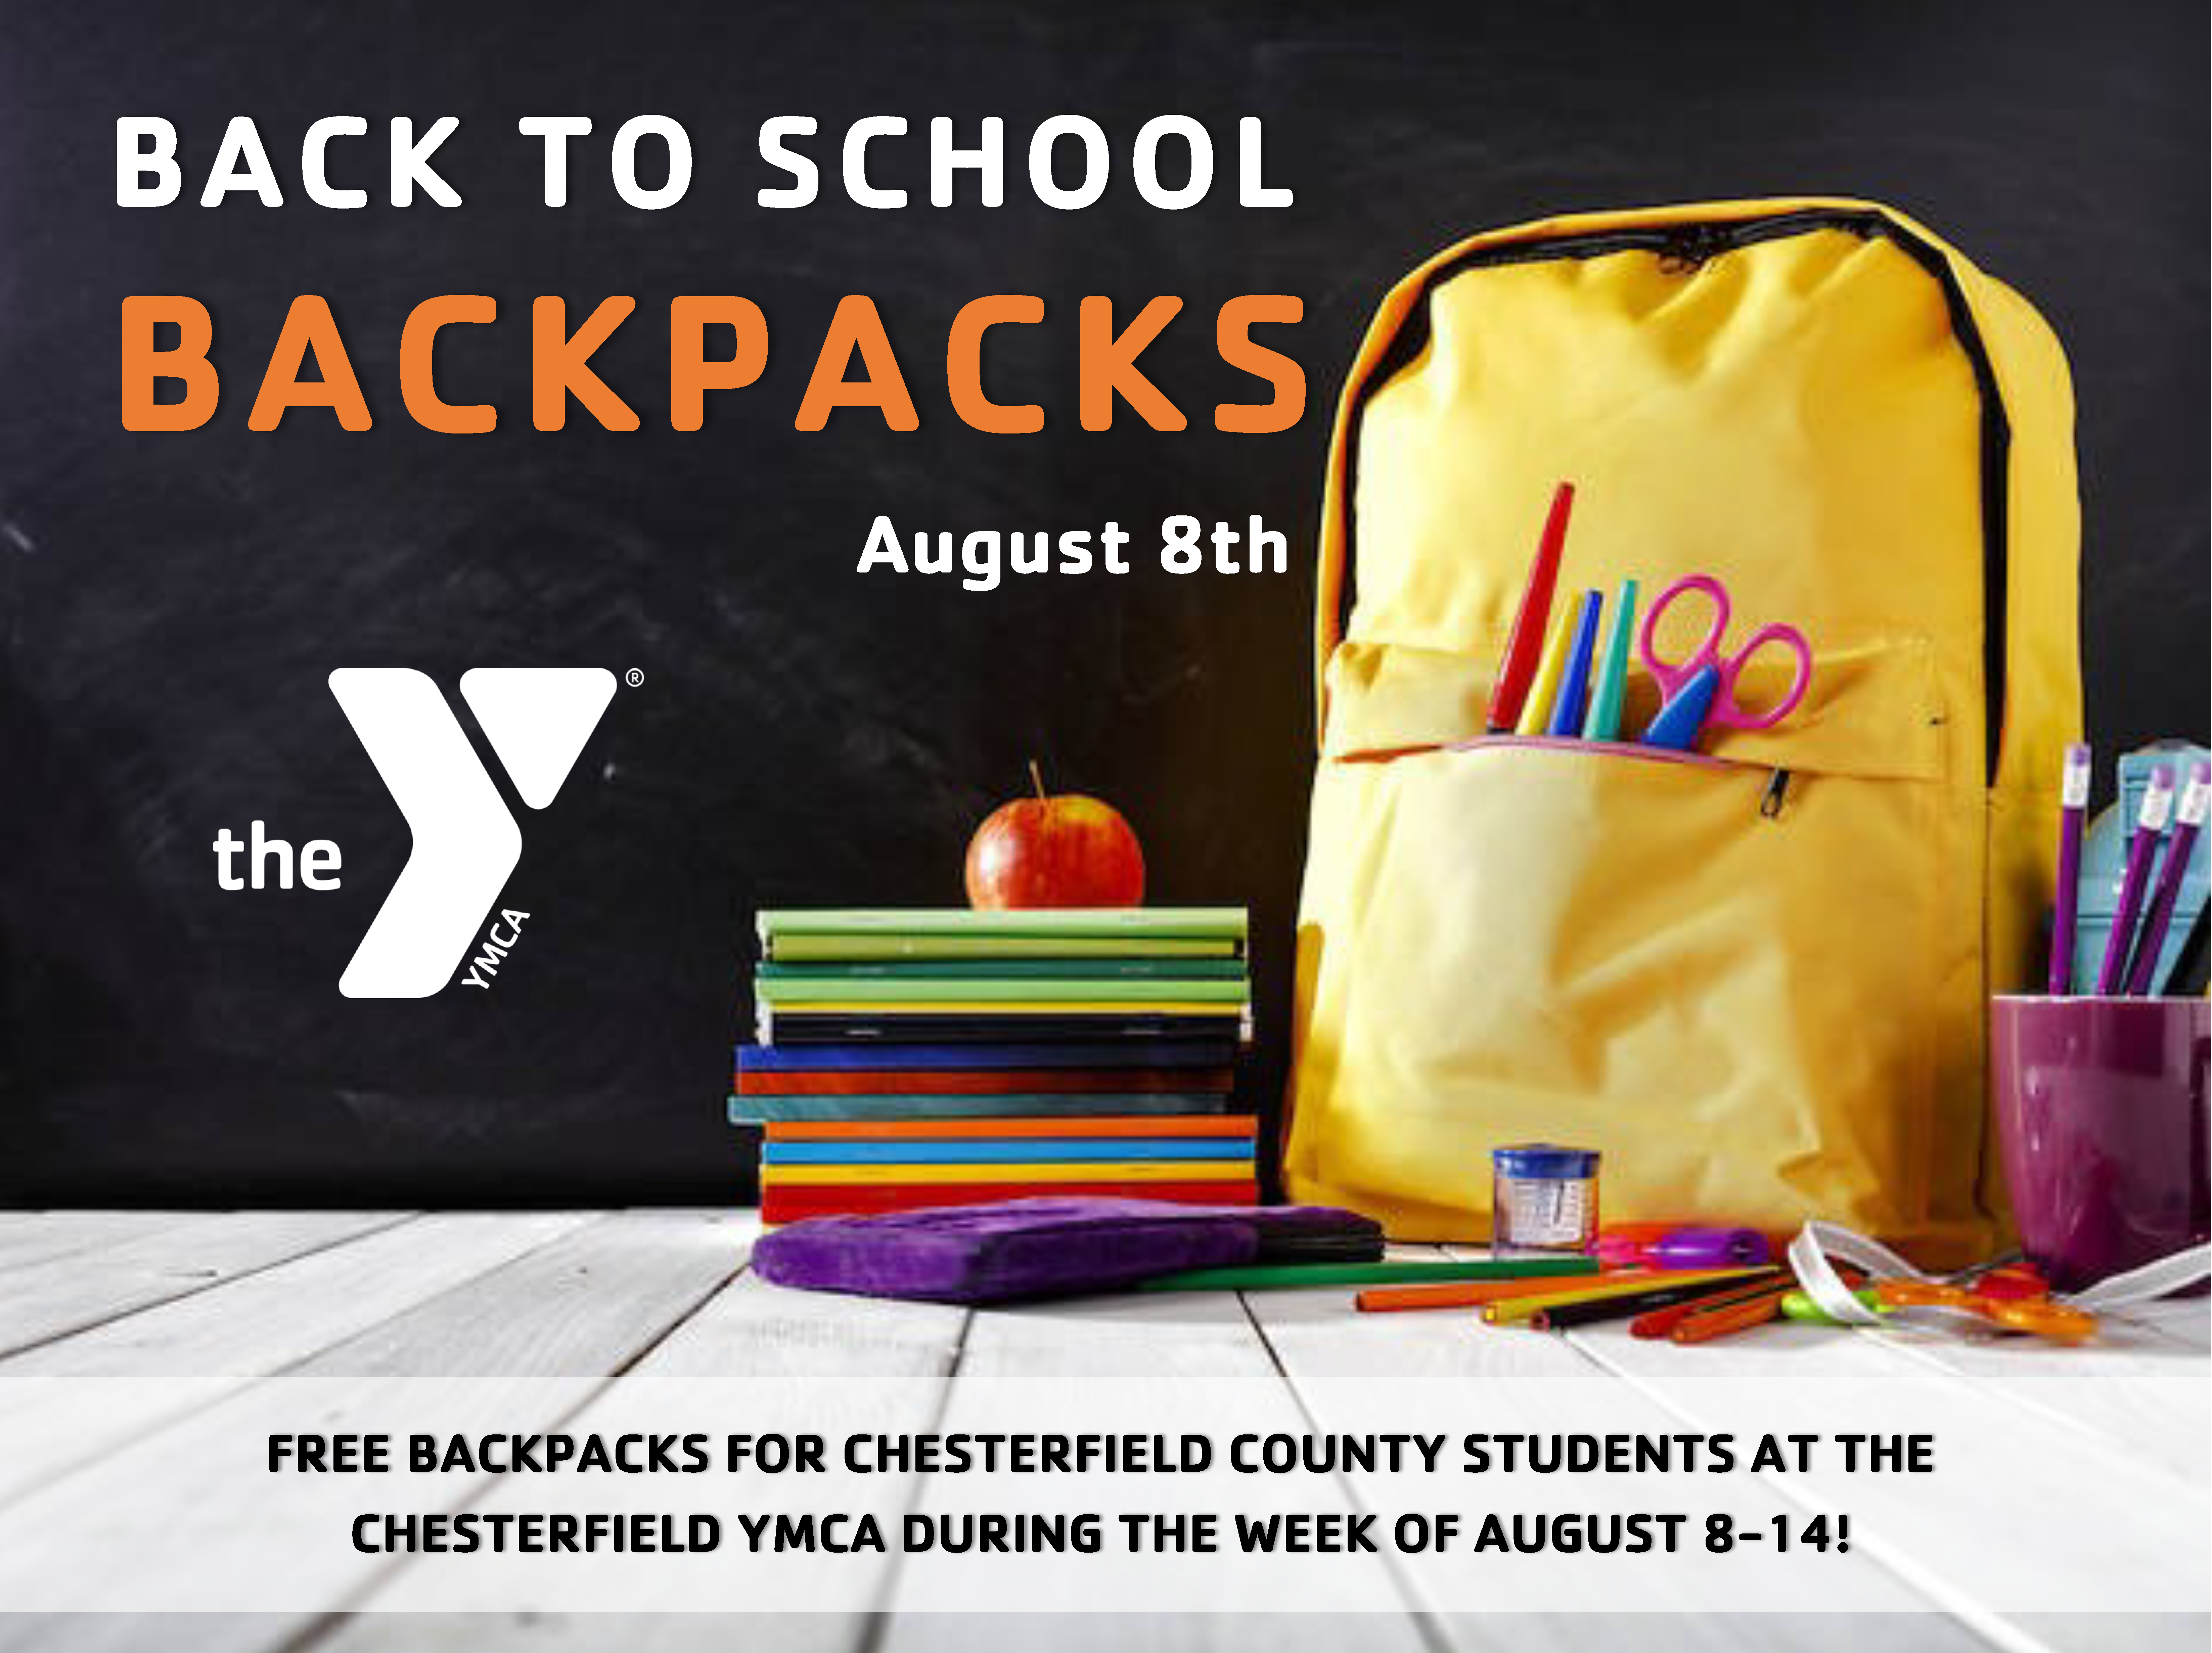 https://www.ymcaupd.org/sites/default/files/revslider/image/Back%20to%20School%20Backpacks%20CHES%202021.png